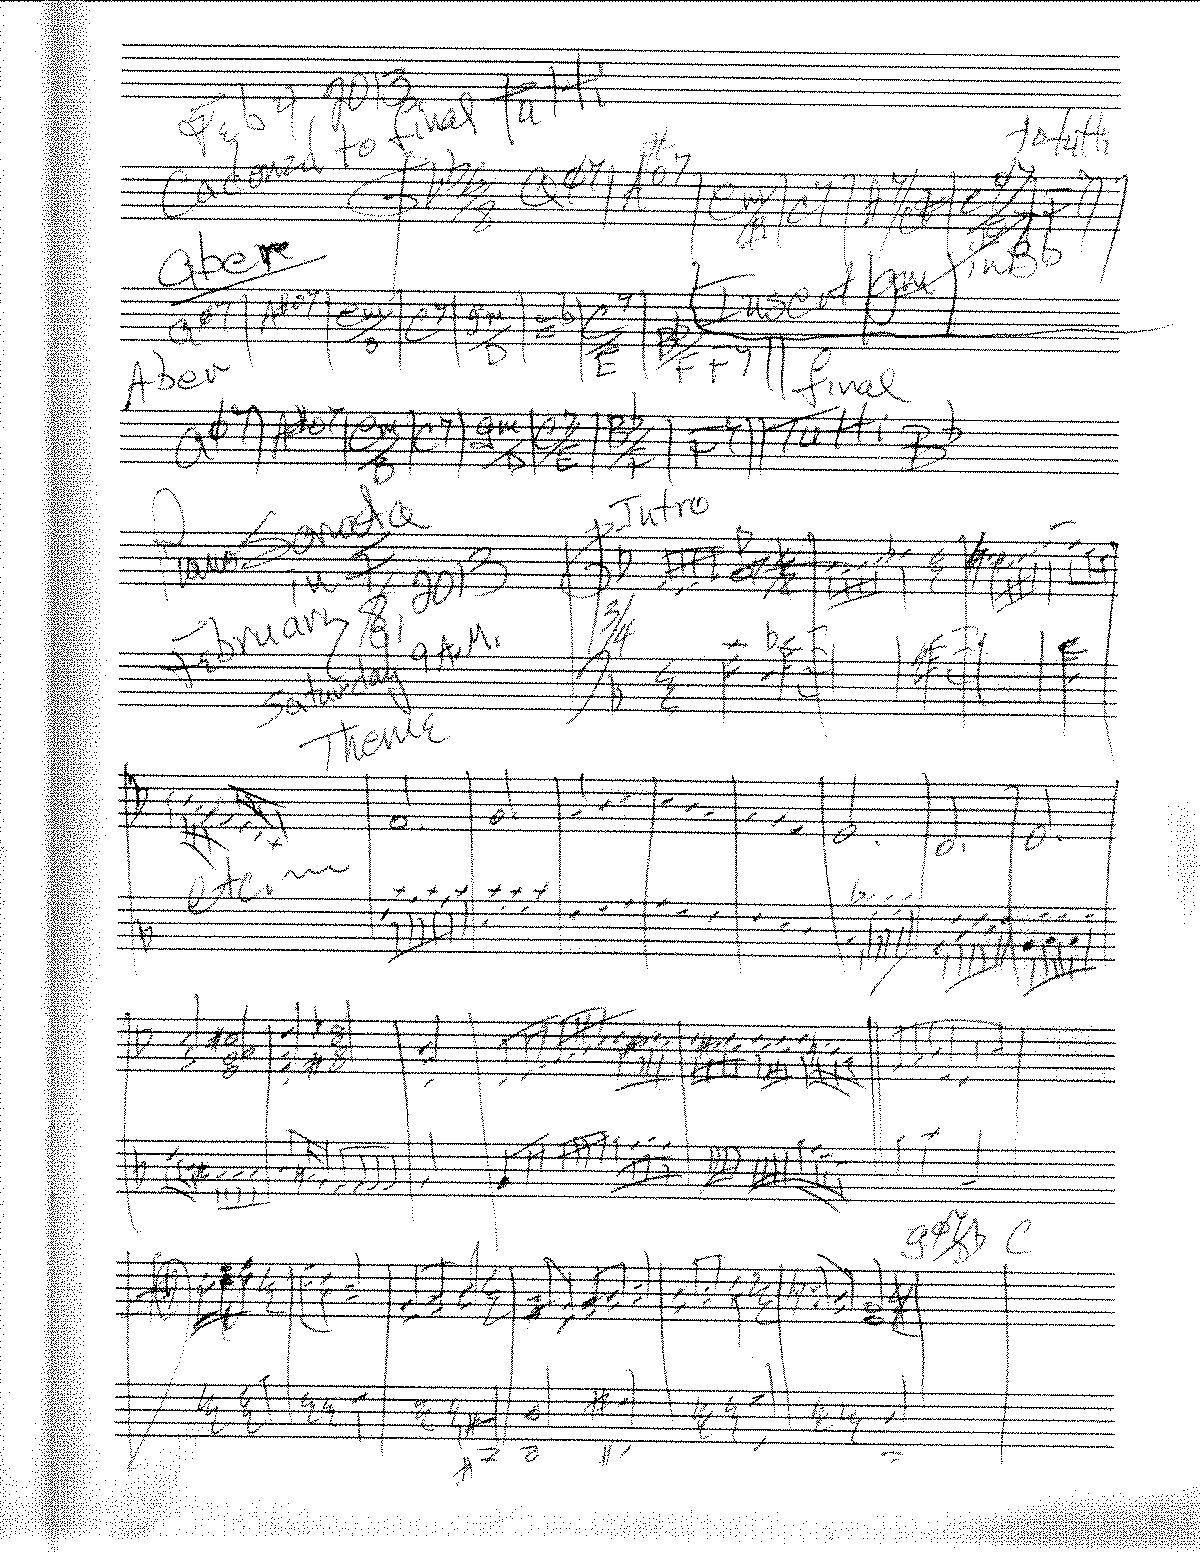 PMLP440753-MS-I-II-III-piano-sonata-F-major-simpson-imslp-020913.pdf